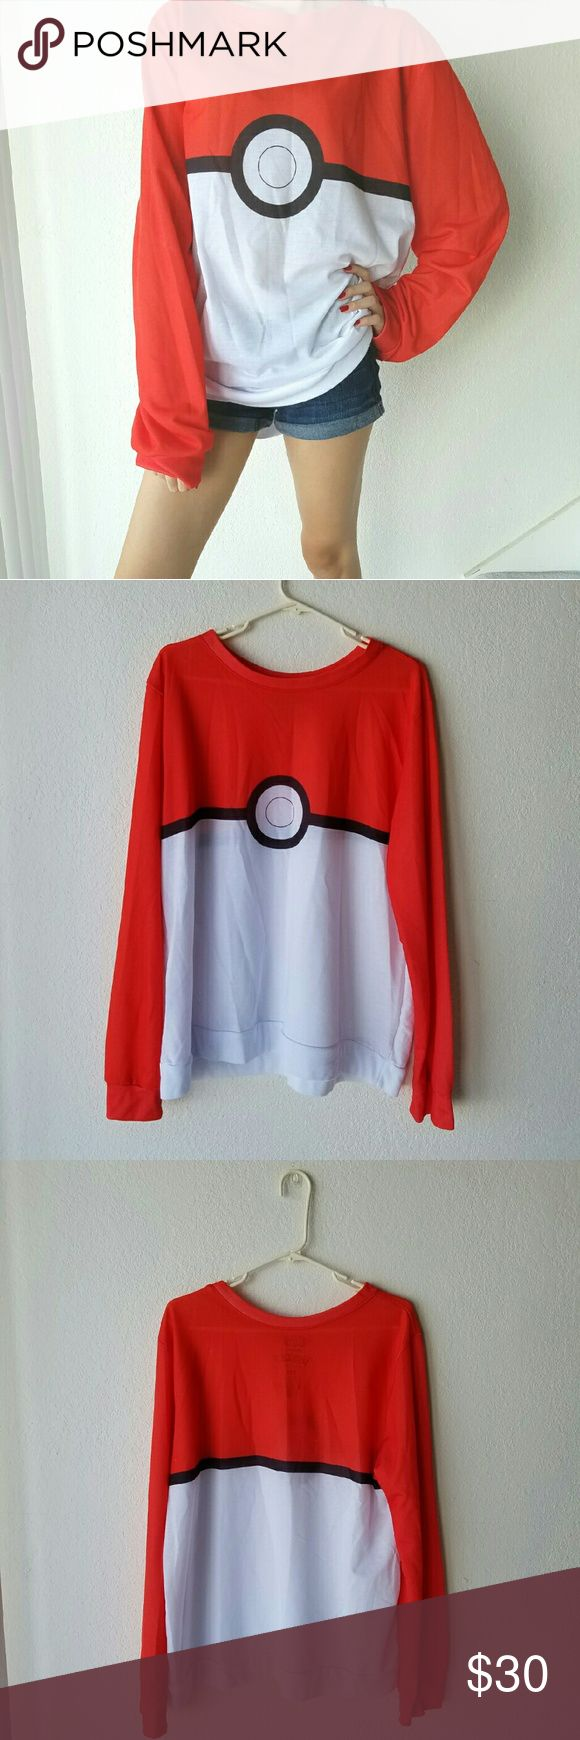 Long Sleeve Pokemon Shirt Super long sleeve Pokemon shirt. Never Worn. No Stains. Not see through as shown in model picture. Length is Mid thigh. Can fit S - XL. No Trades. Free Gift with Purchase. Bundle Discounts. Hot Topic Tops Sweatshirts & Hoodies